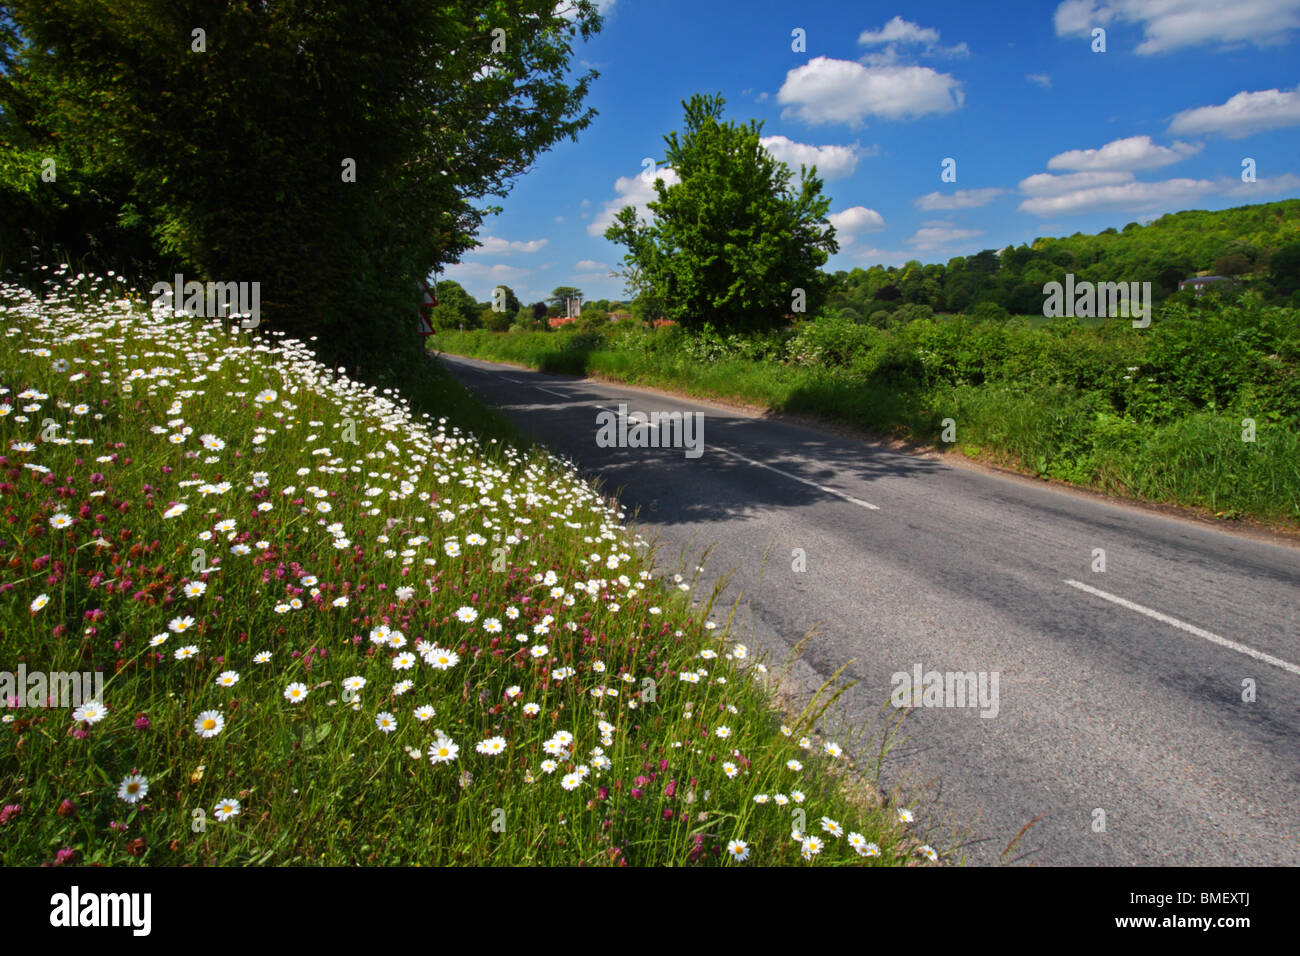 The road from Mill End to Hambleden lined with Oxeye daisies in Spring. Buckinghamshire, United Kingdom. - Stock Image